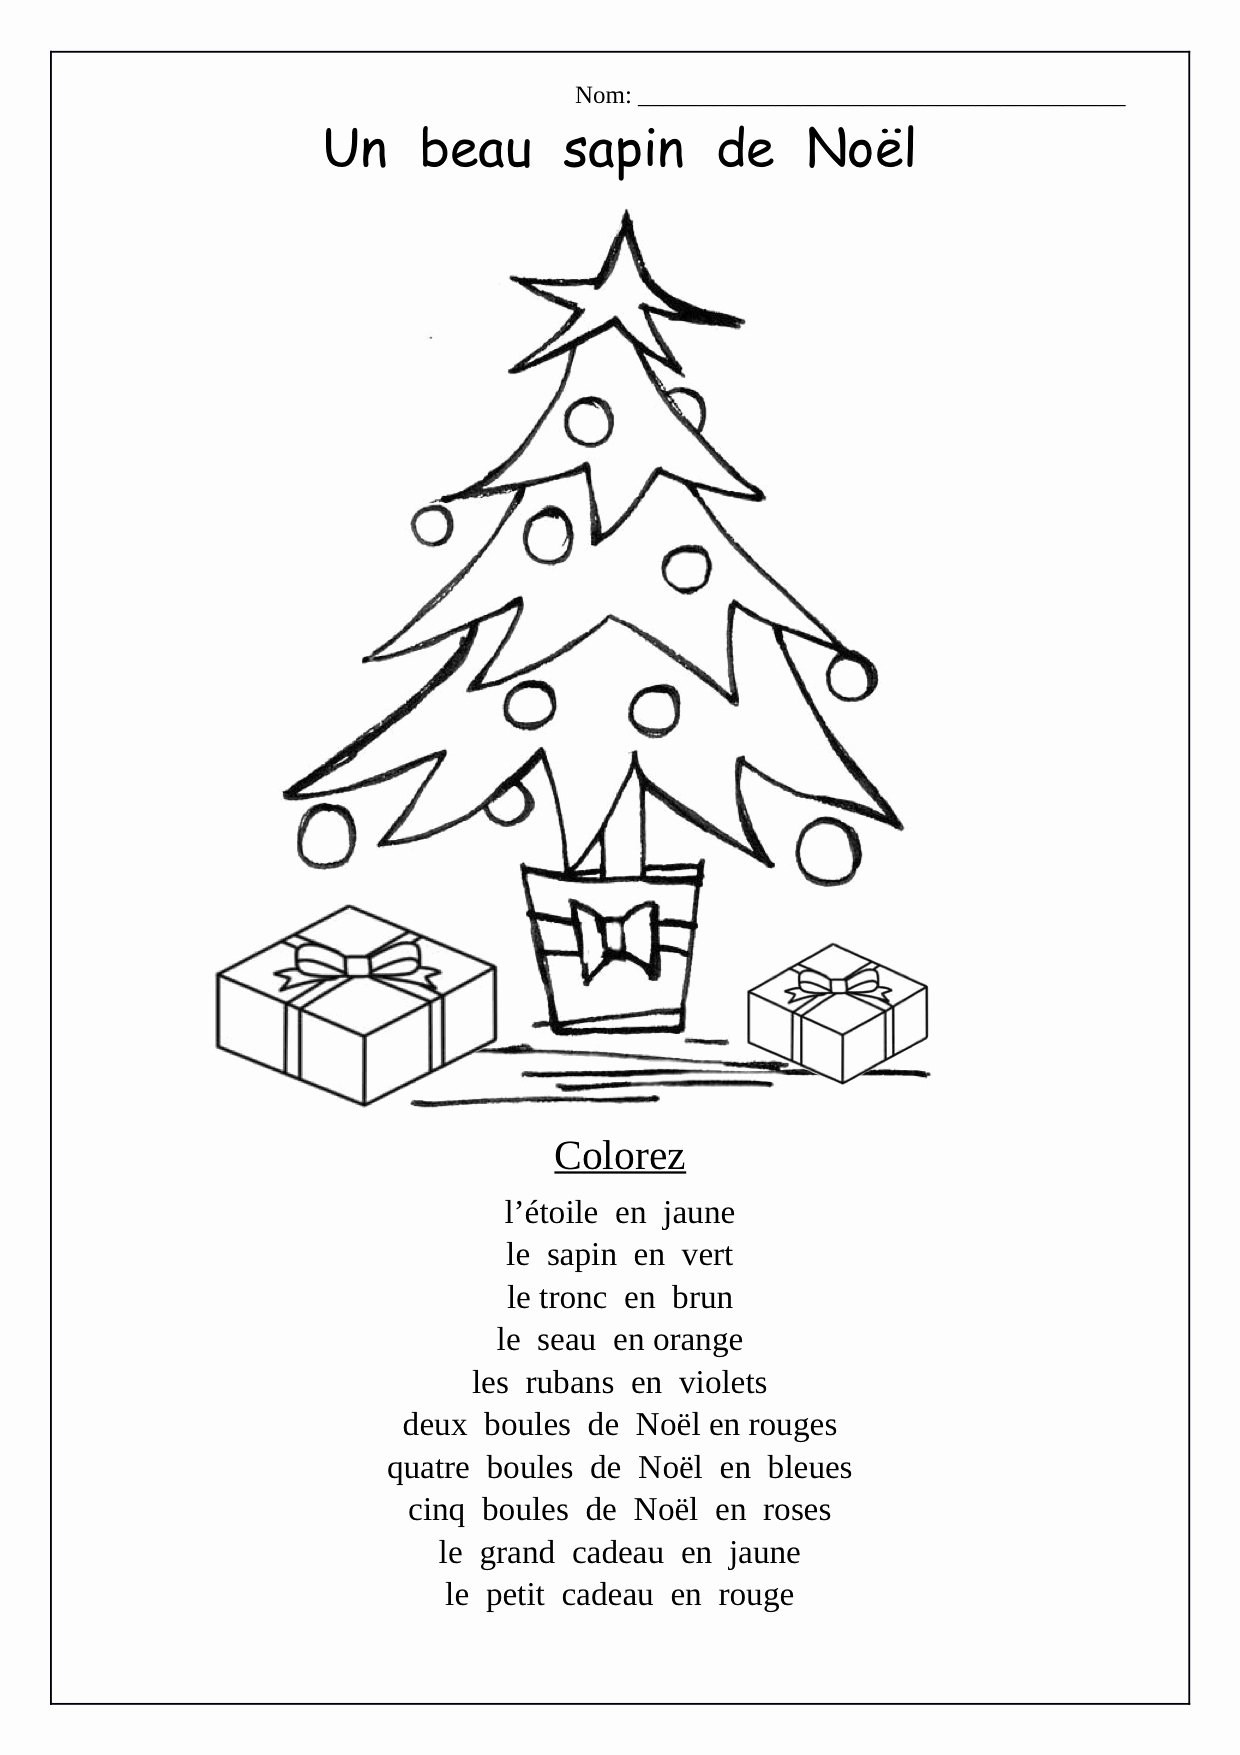 Printable Christmas Worksheets for Preschoolers Best Of Worksheets Christmas Tree Preschool Worksheets Printable